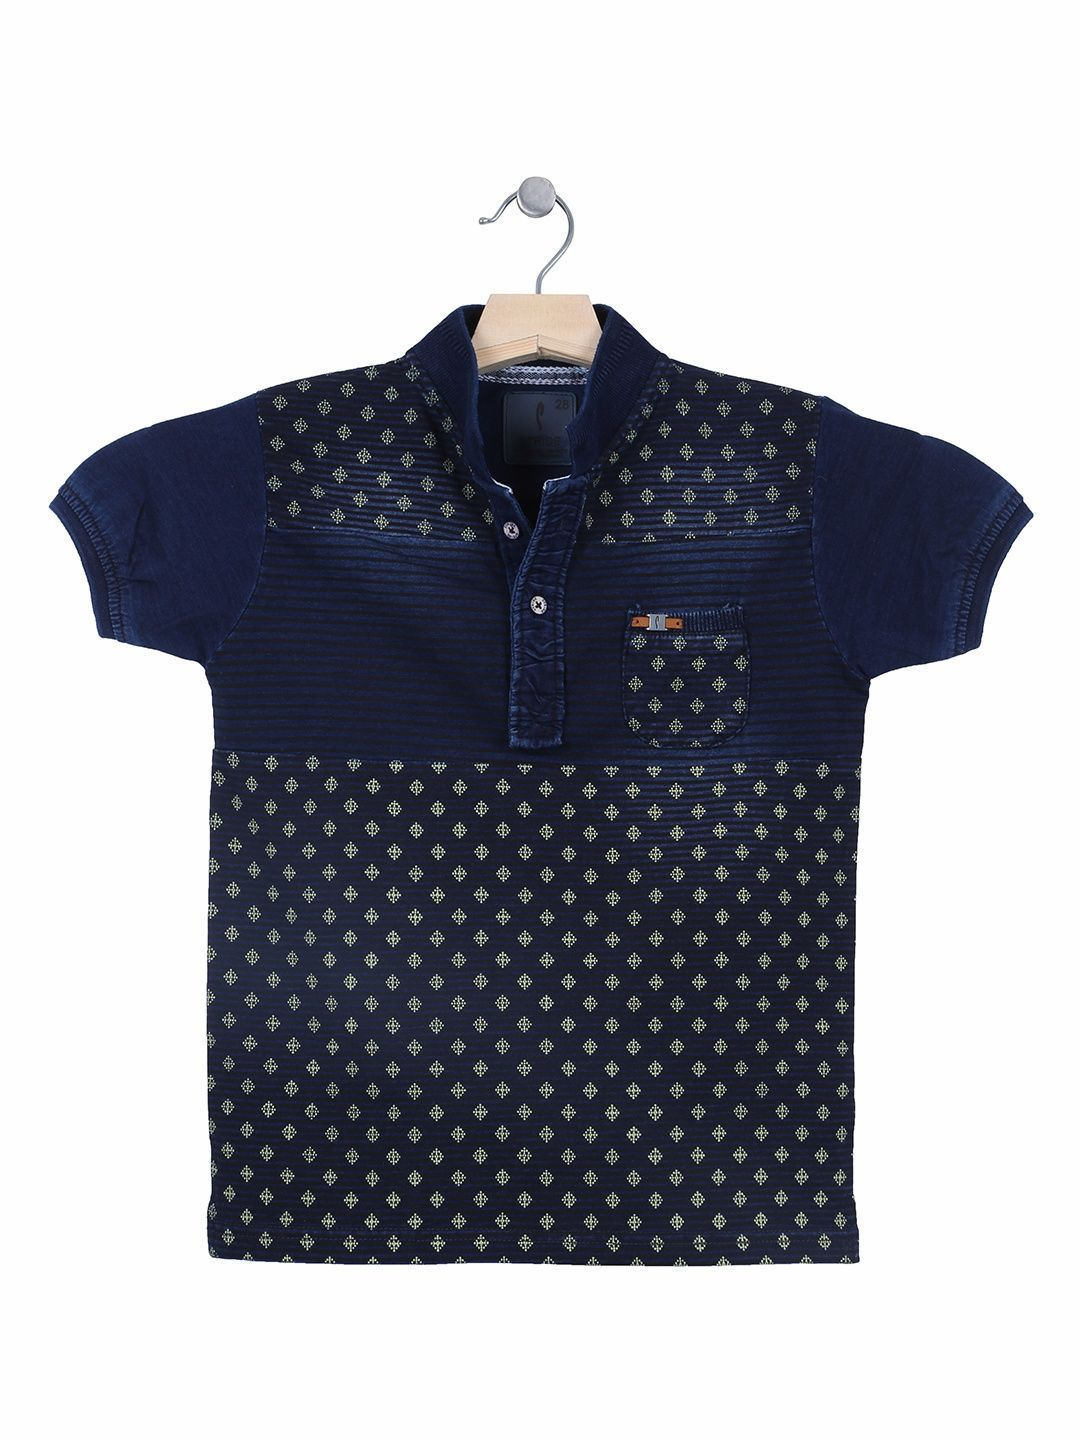 f017c0acbc Stride Navy Printed Cotton Casual Wear T Shirt   But Boys T-shirts ...